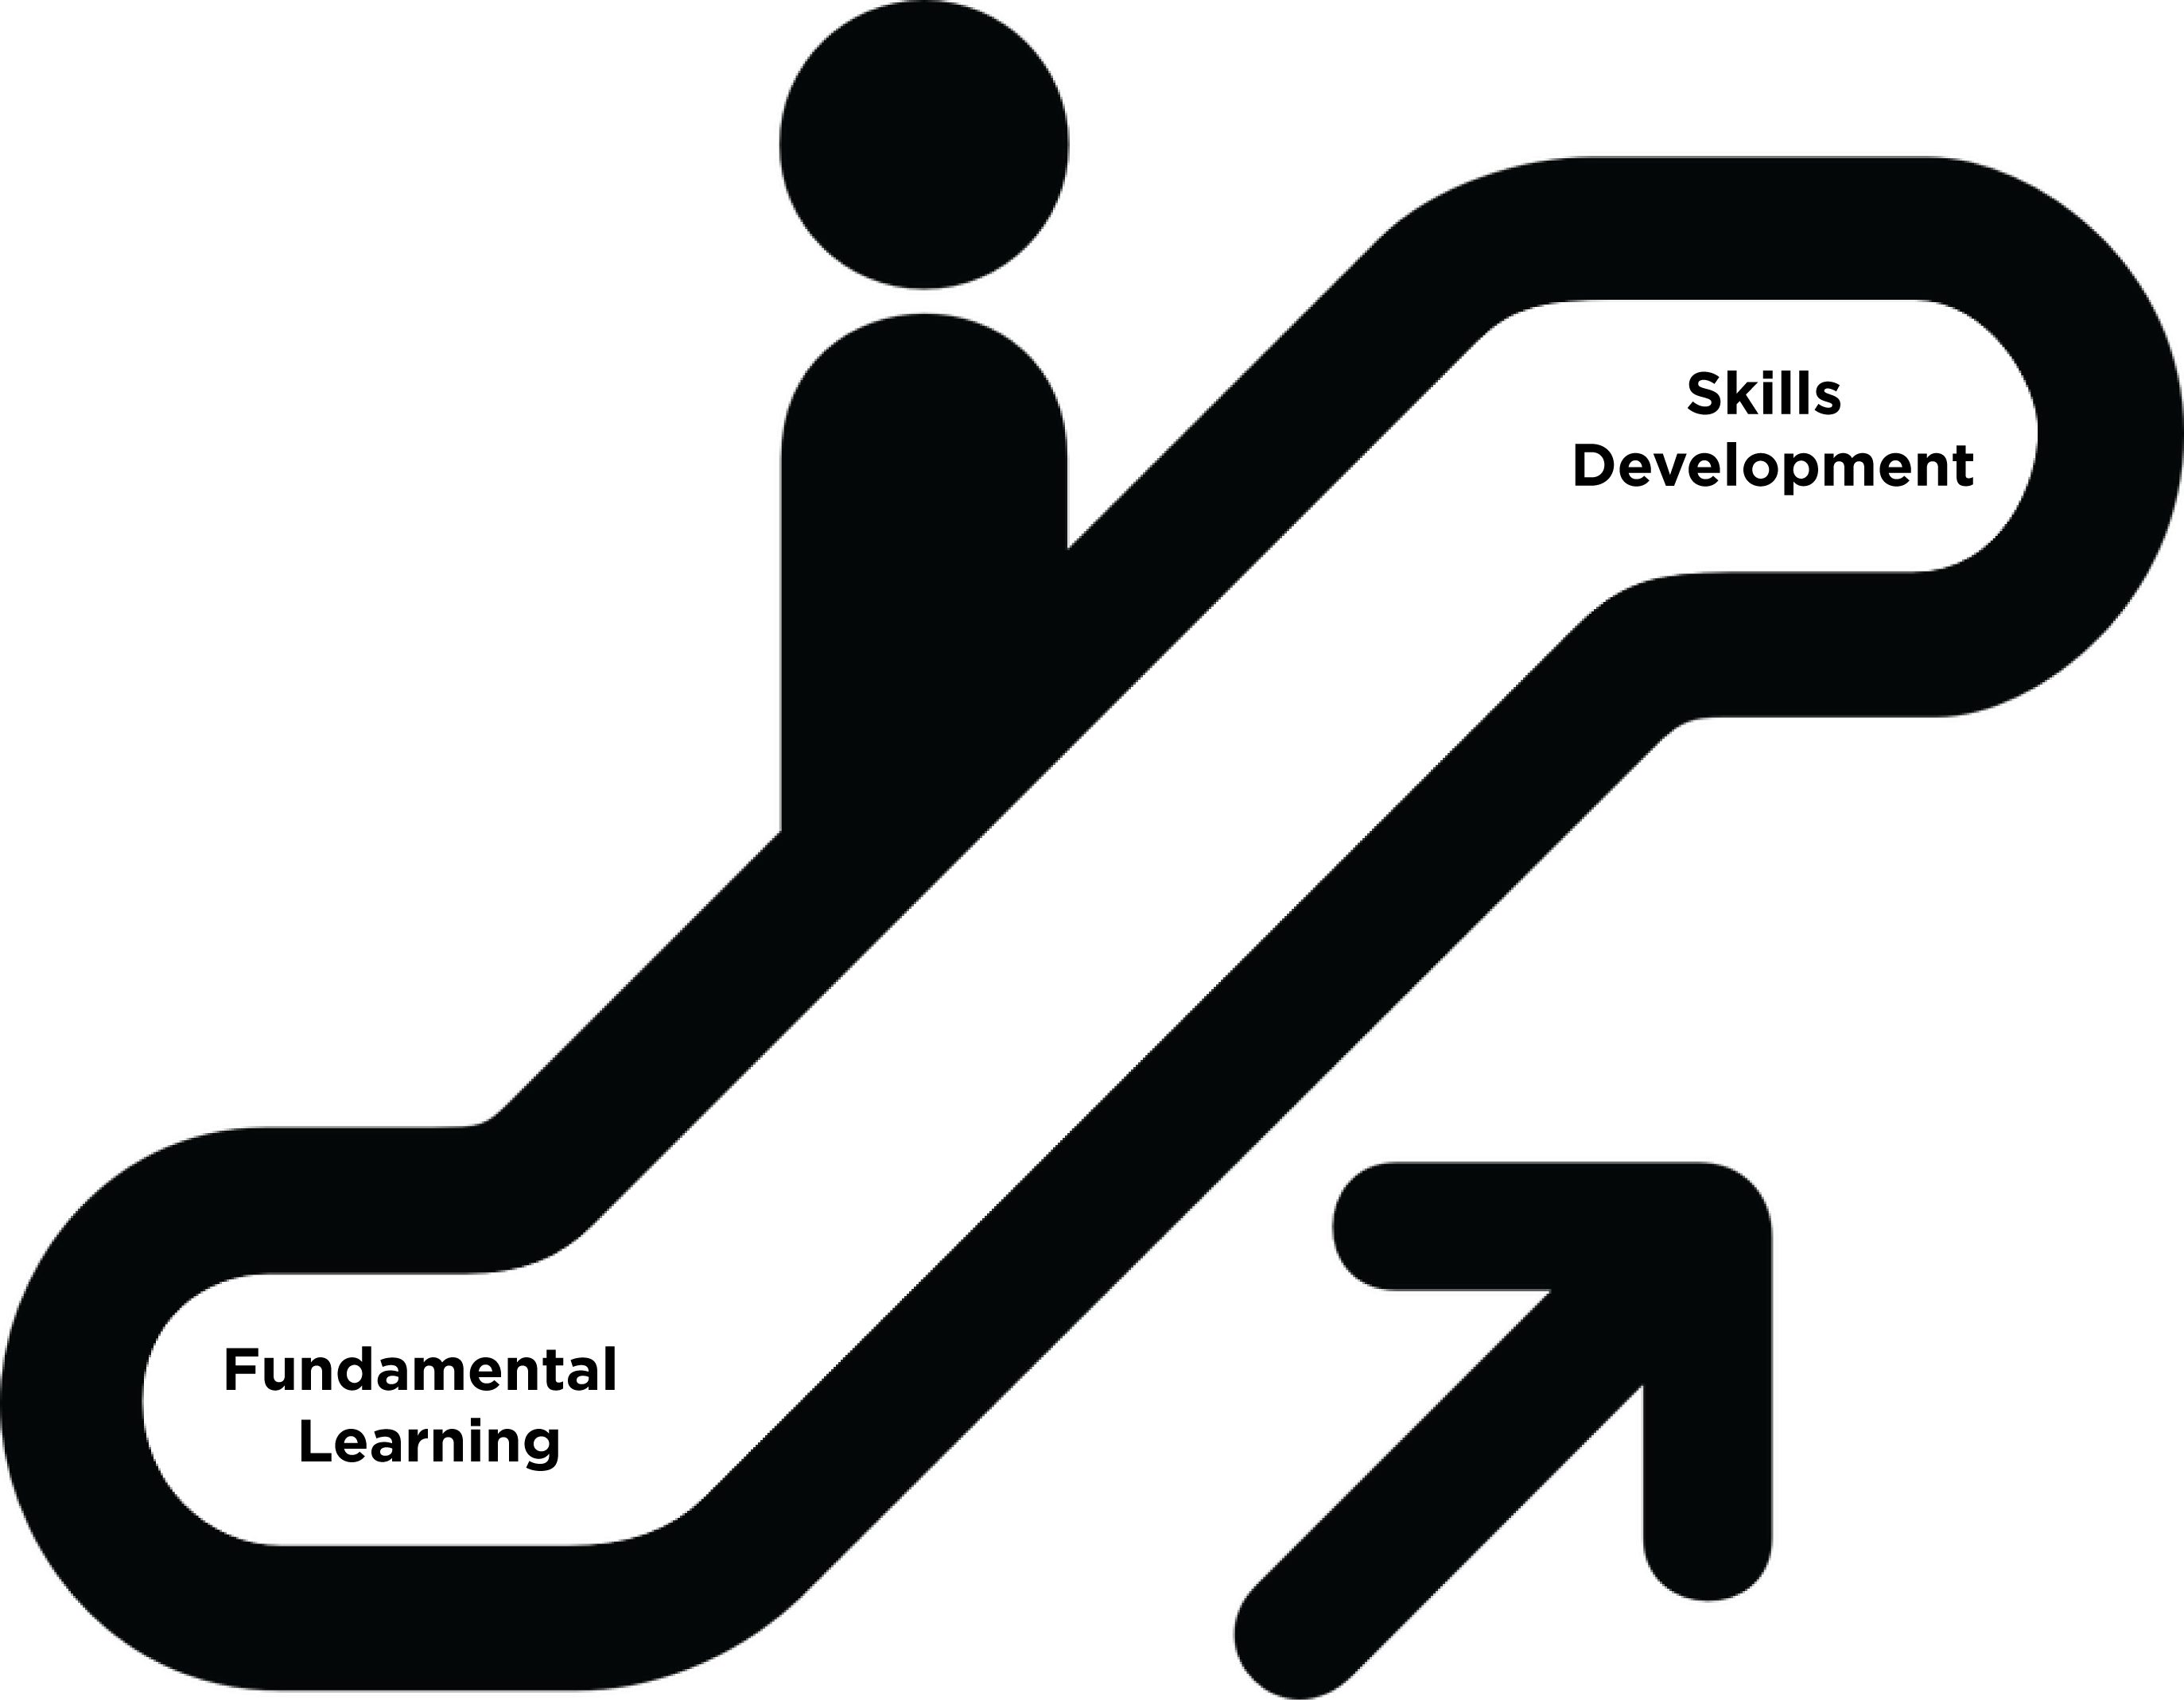 Skills Development & Fundamental Learning